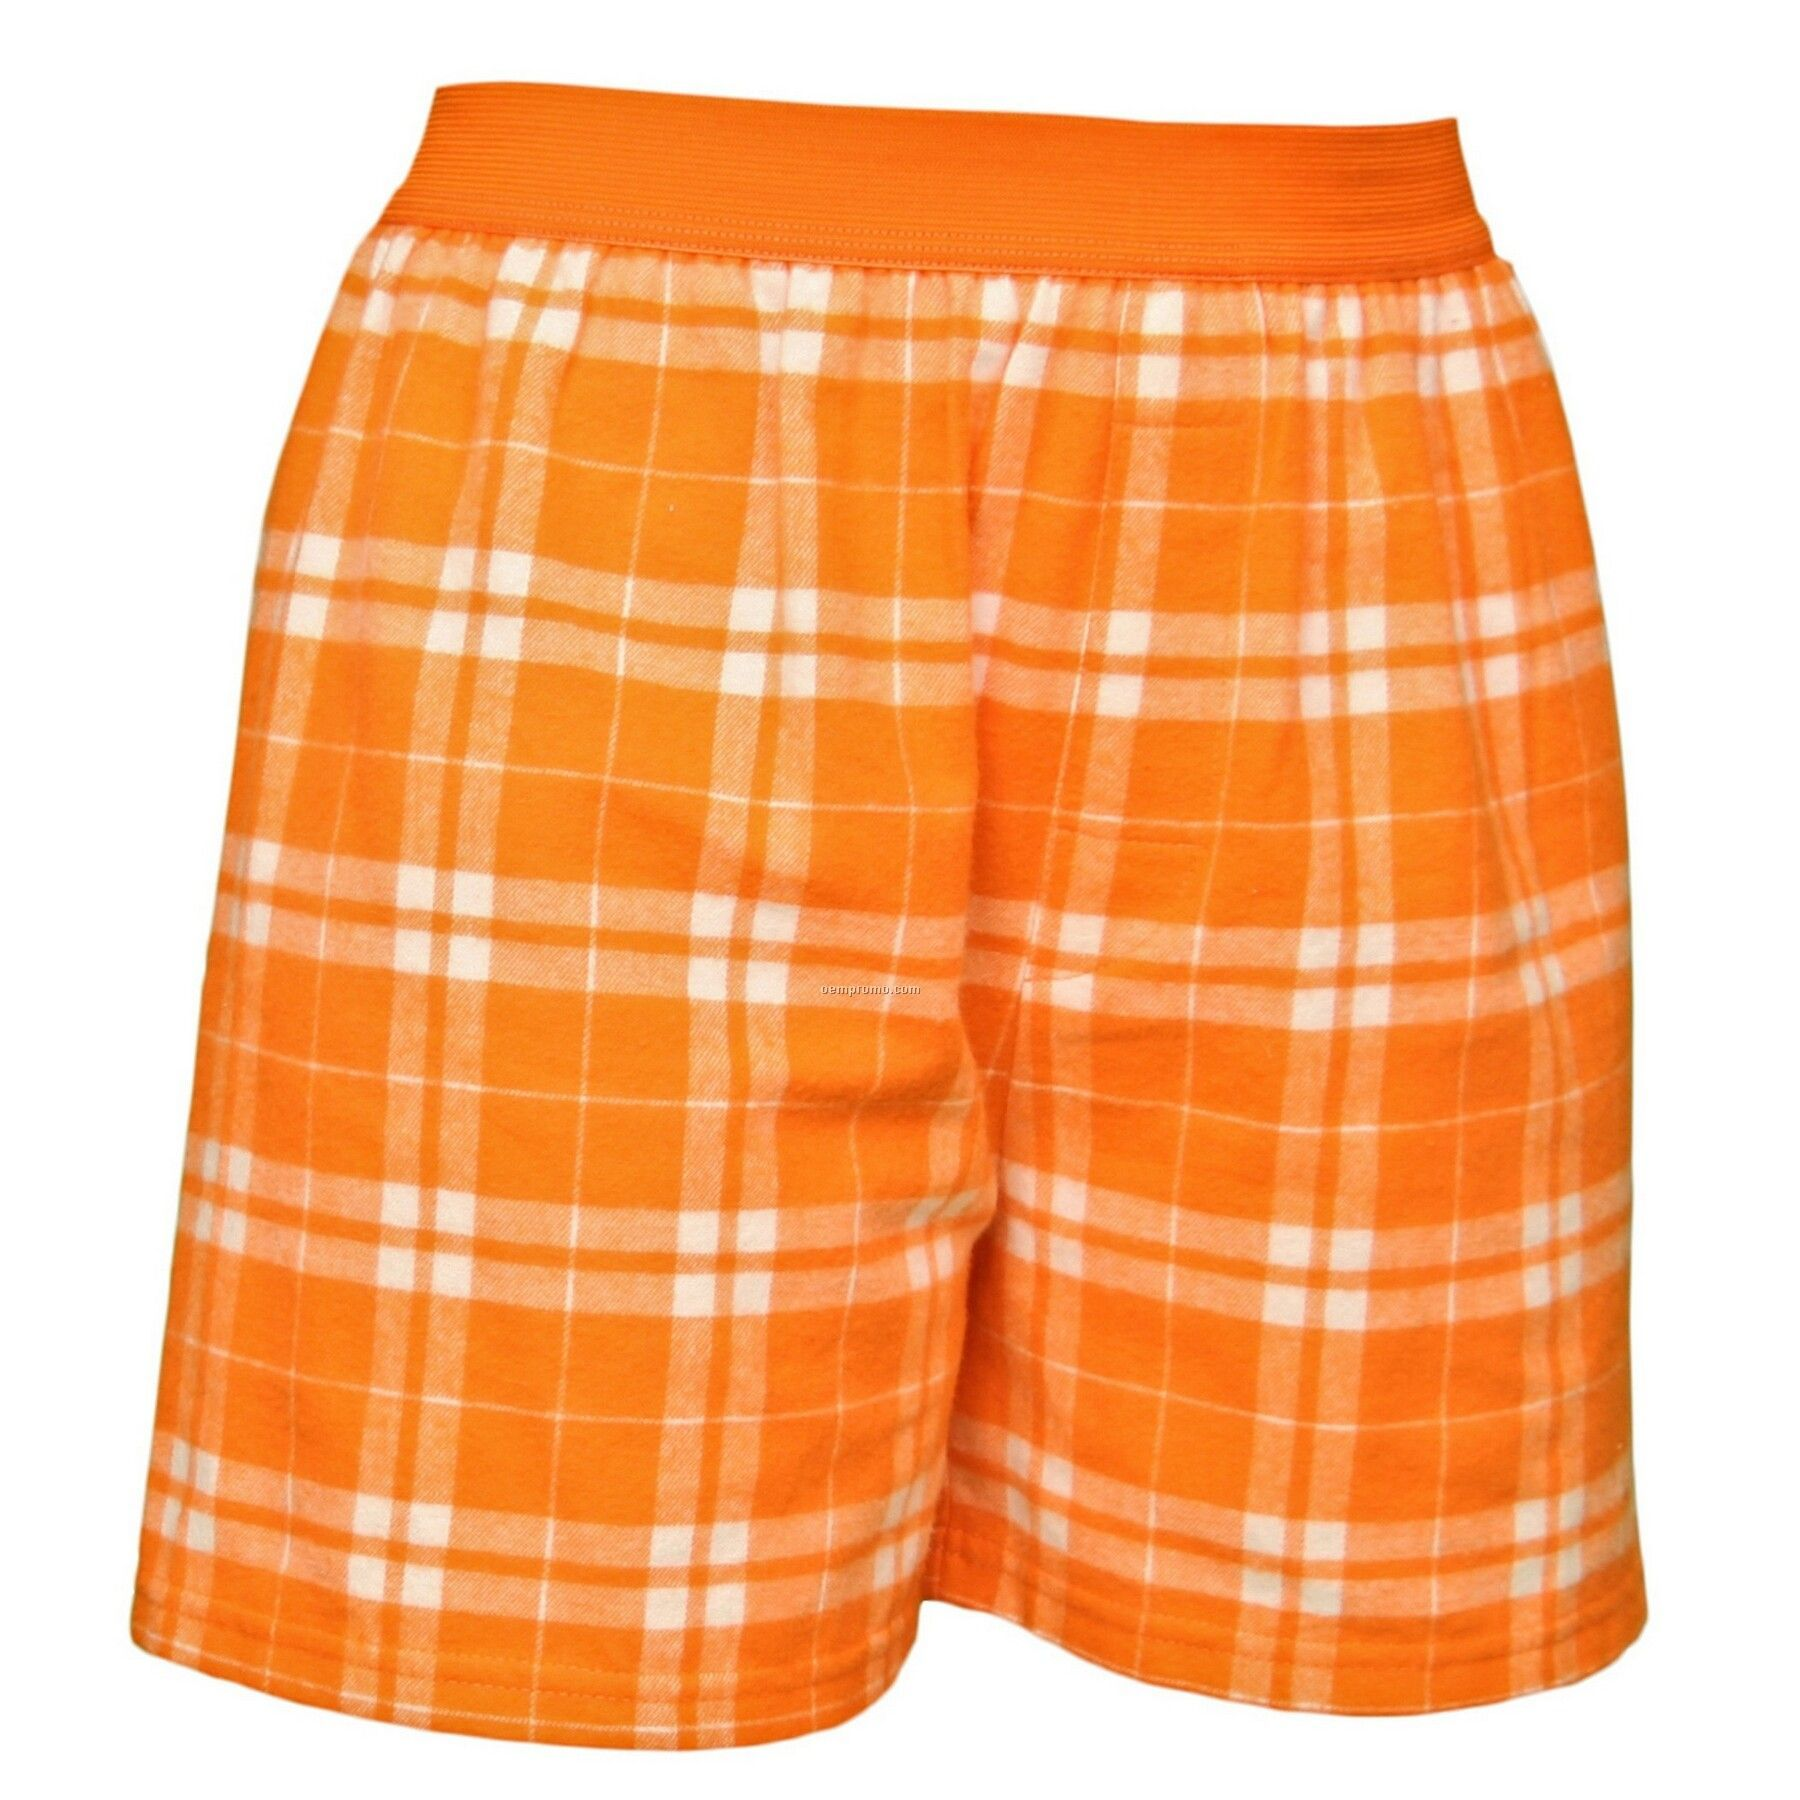 Youth Orange/ White Plaid Classic Boxer Short